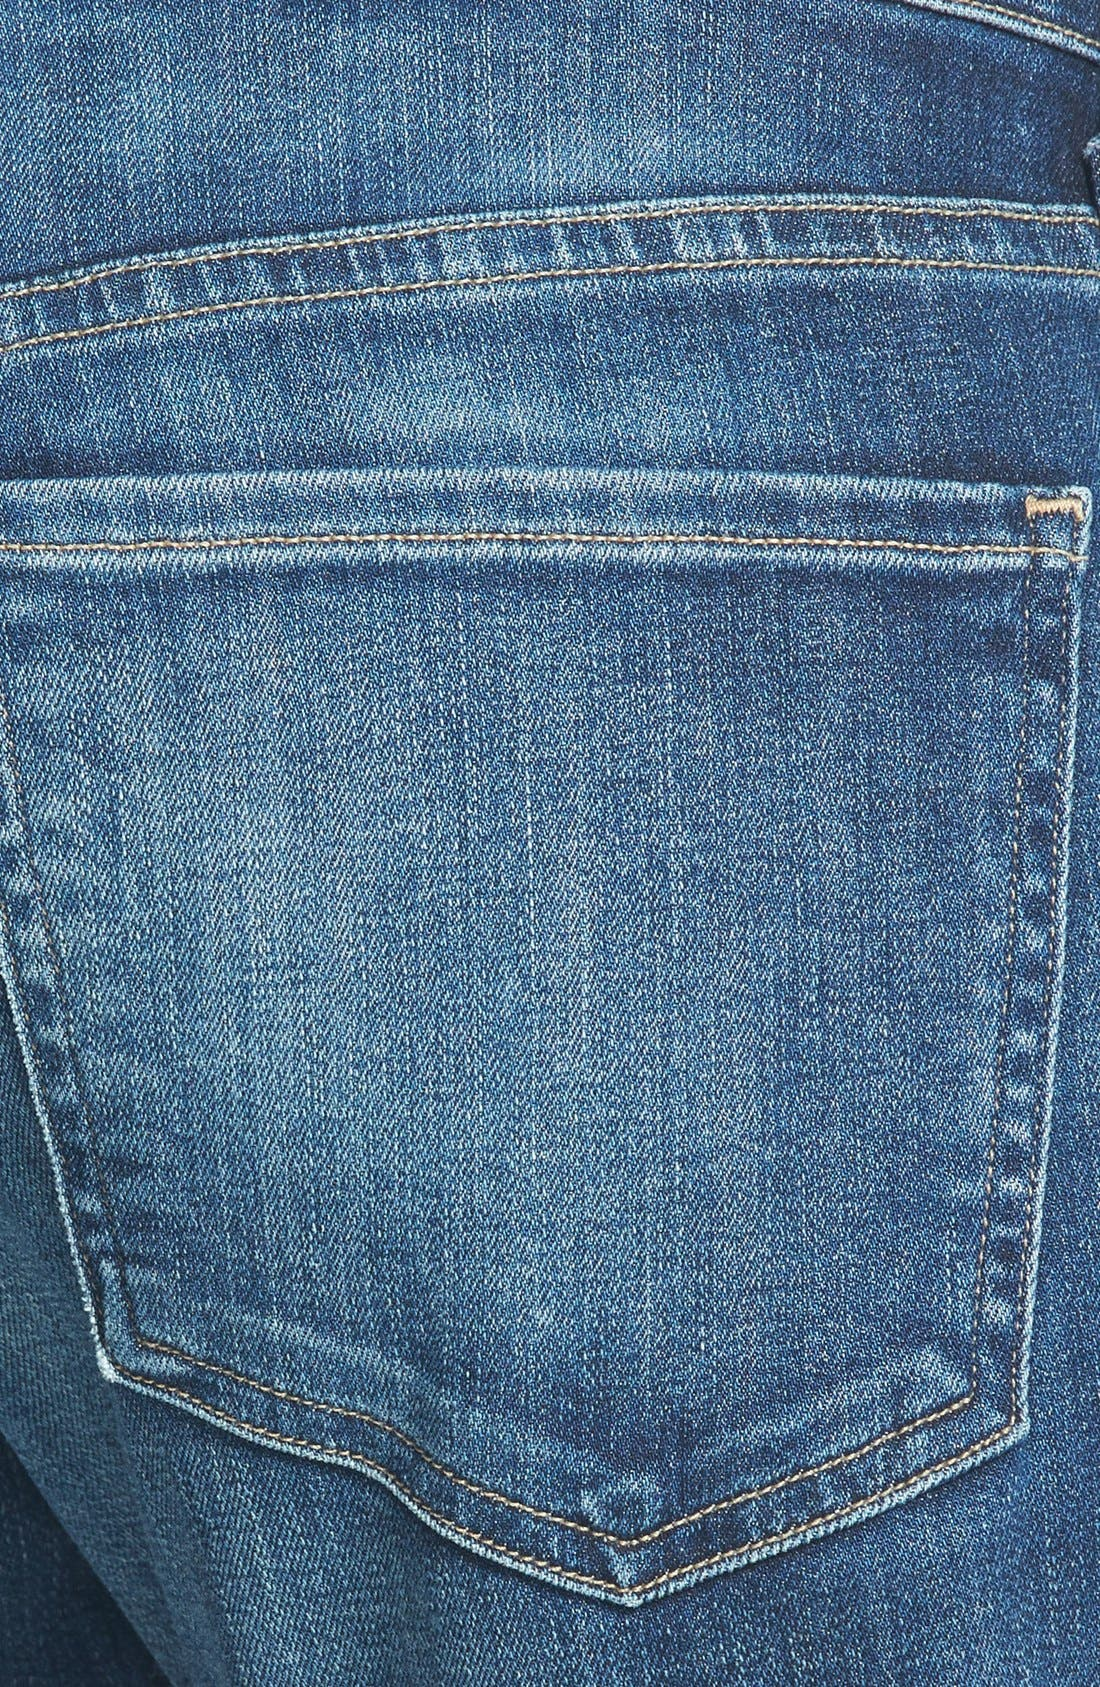 Alternate Image 3  - Citizens of Humanity Emerson Slim Boyfriend Jeans (Blue Ridge)